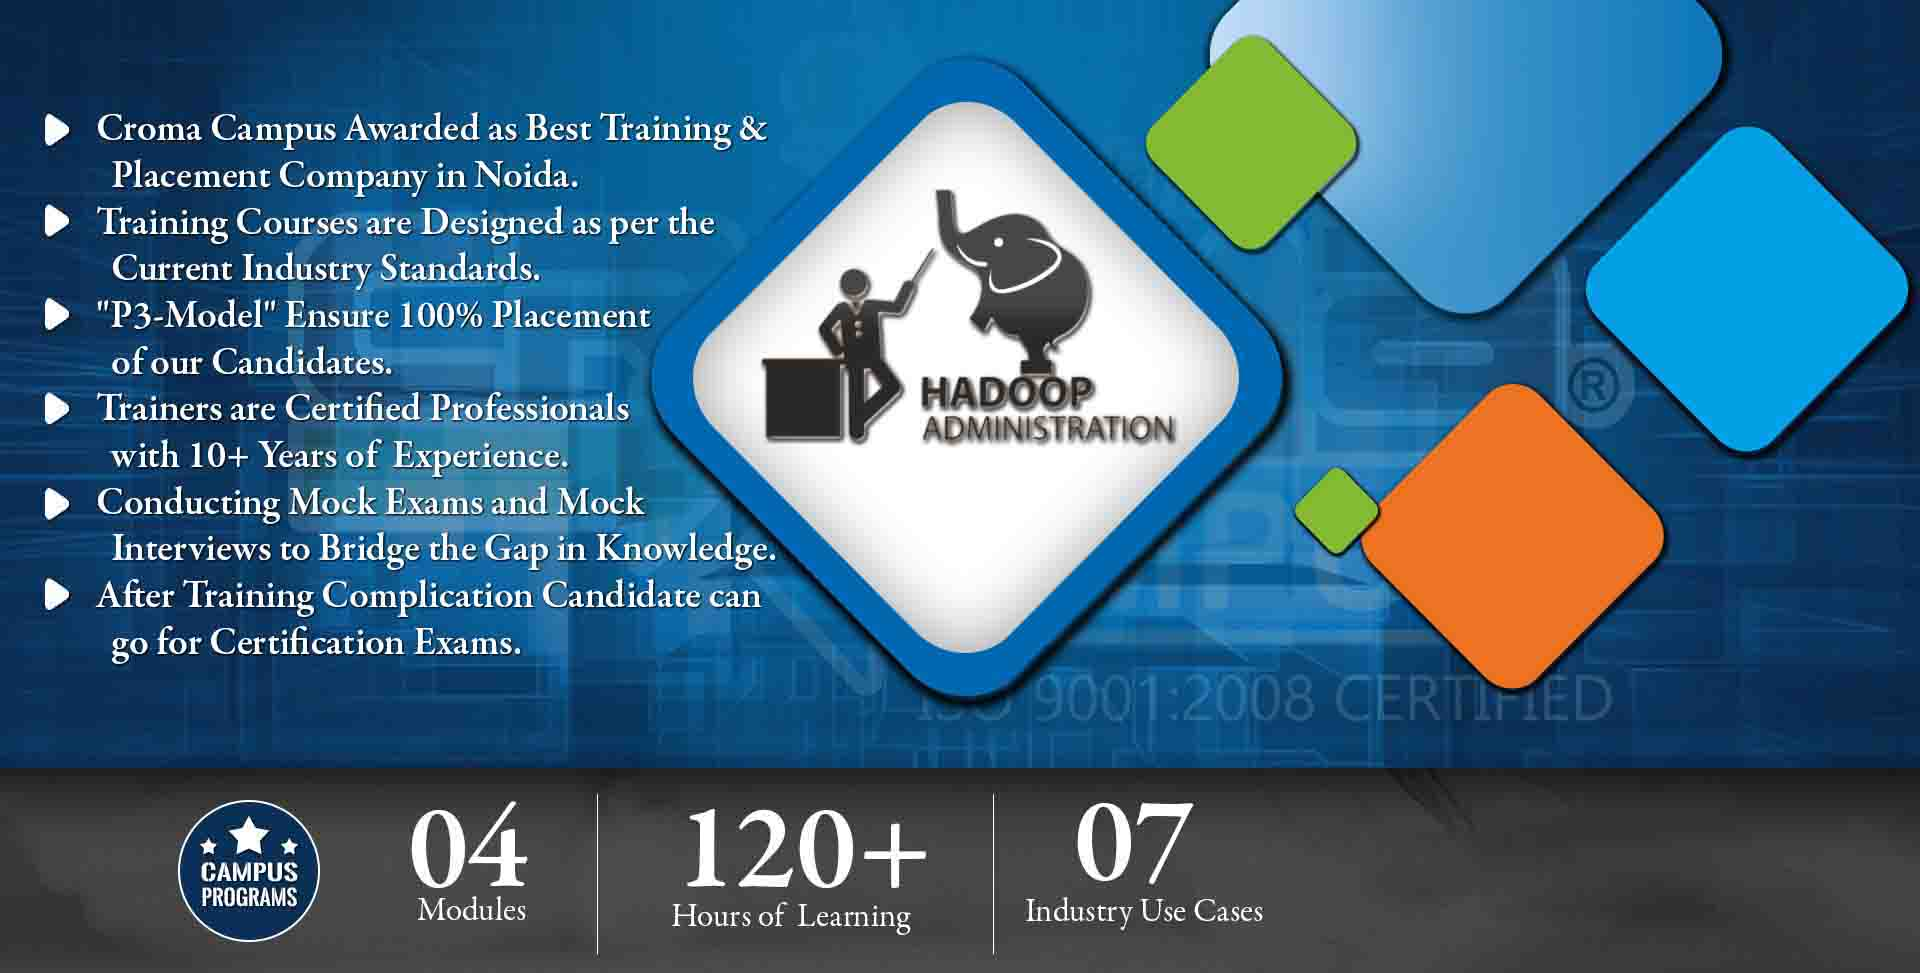 Hadoop Administration Training in Delhi NCR- Croma Campus